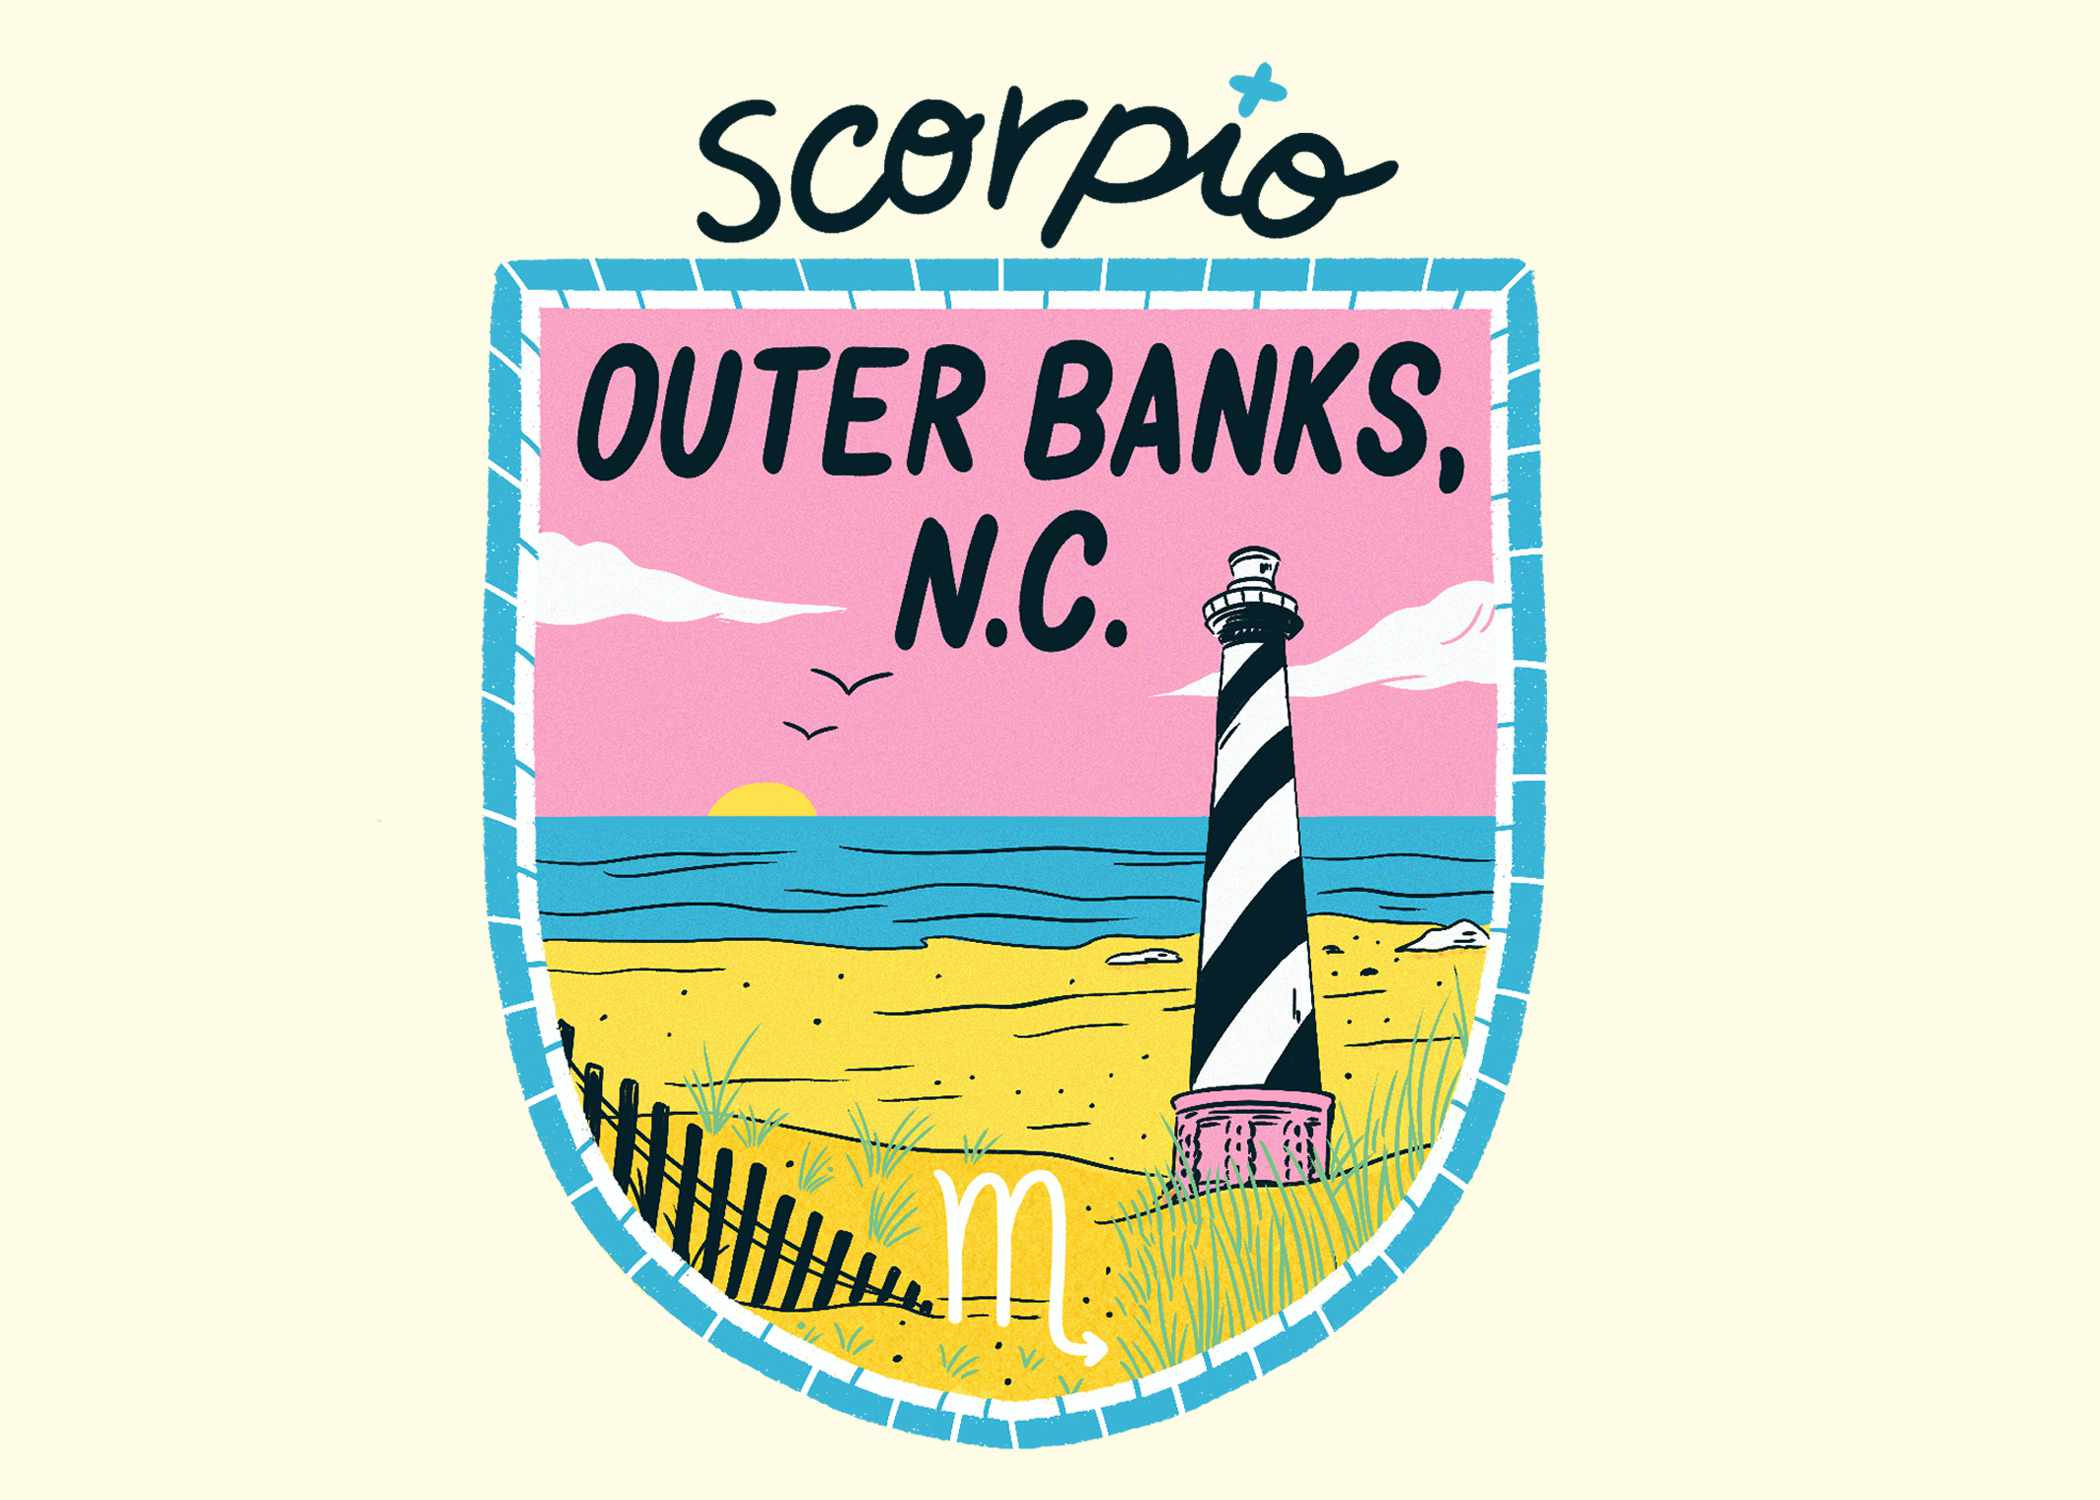 An illustration of the Outer Banks for Scorpio